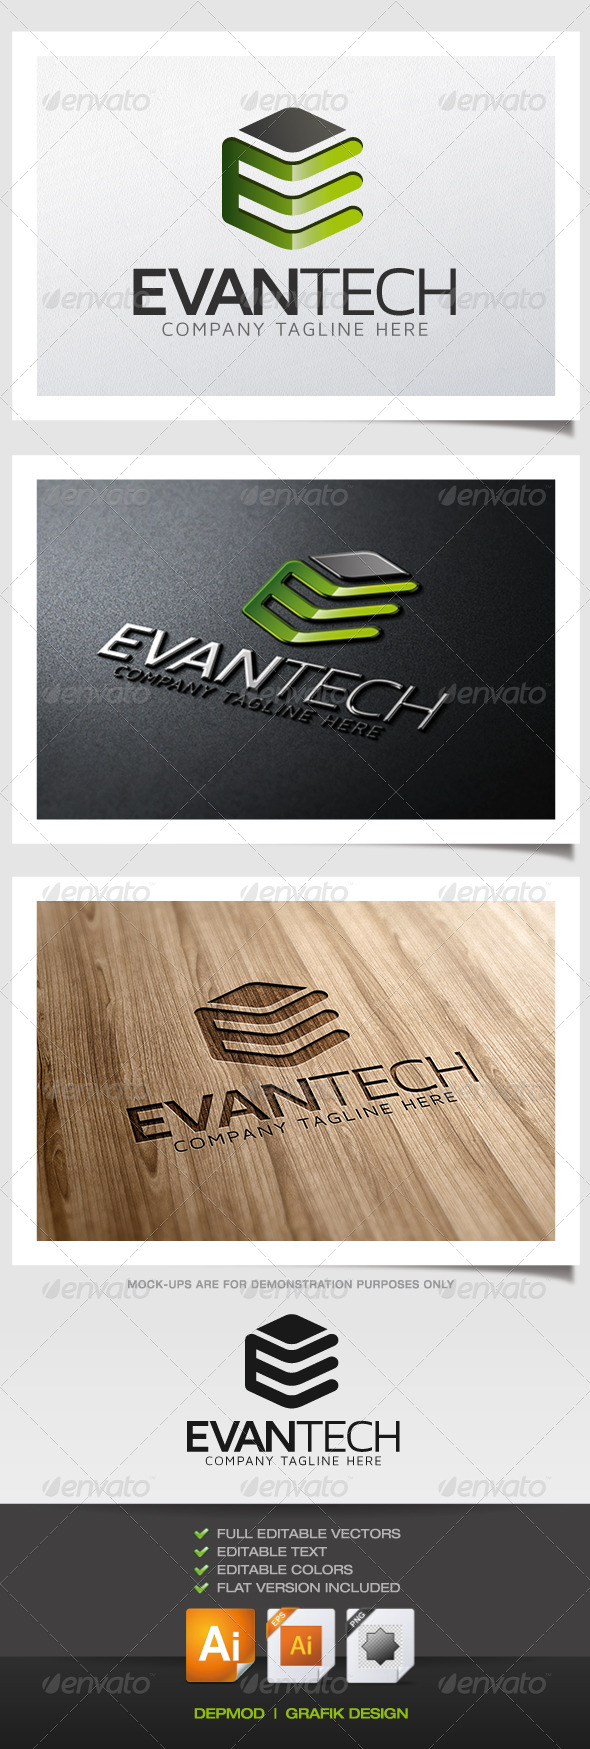 GraphicRiver Evan Tech Logo 5294691